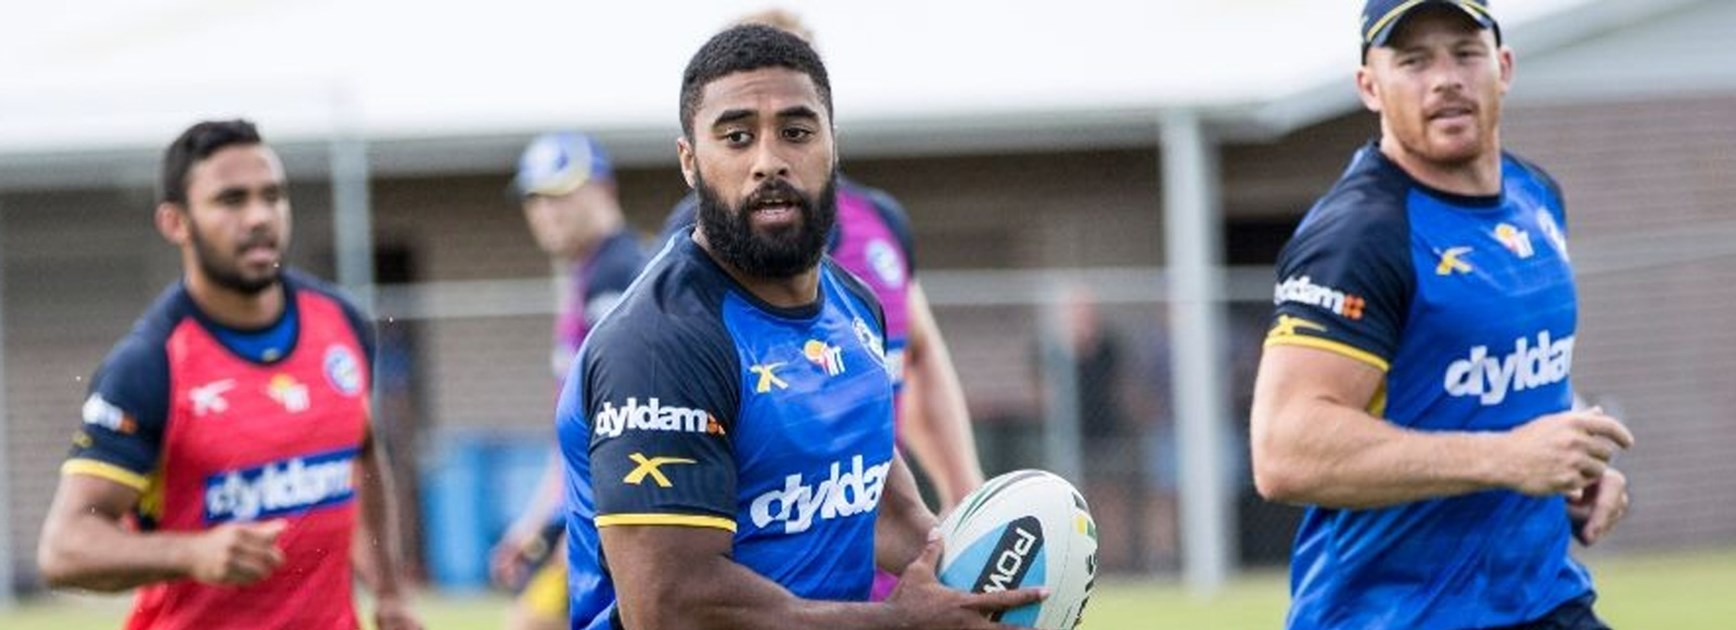 Michael Jennings will make his first appearance as an Eel against his former club the Panthers.